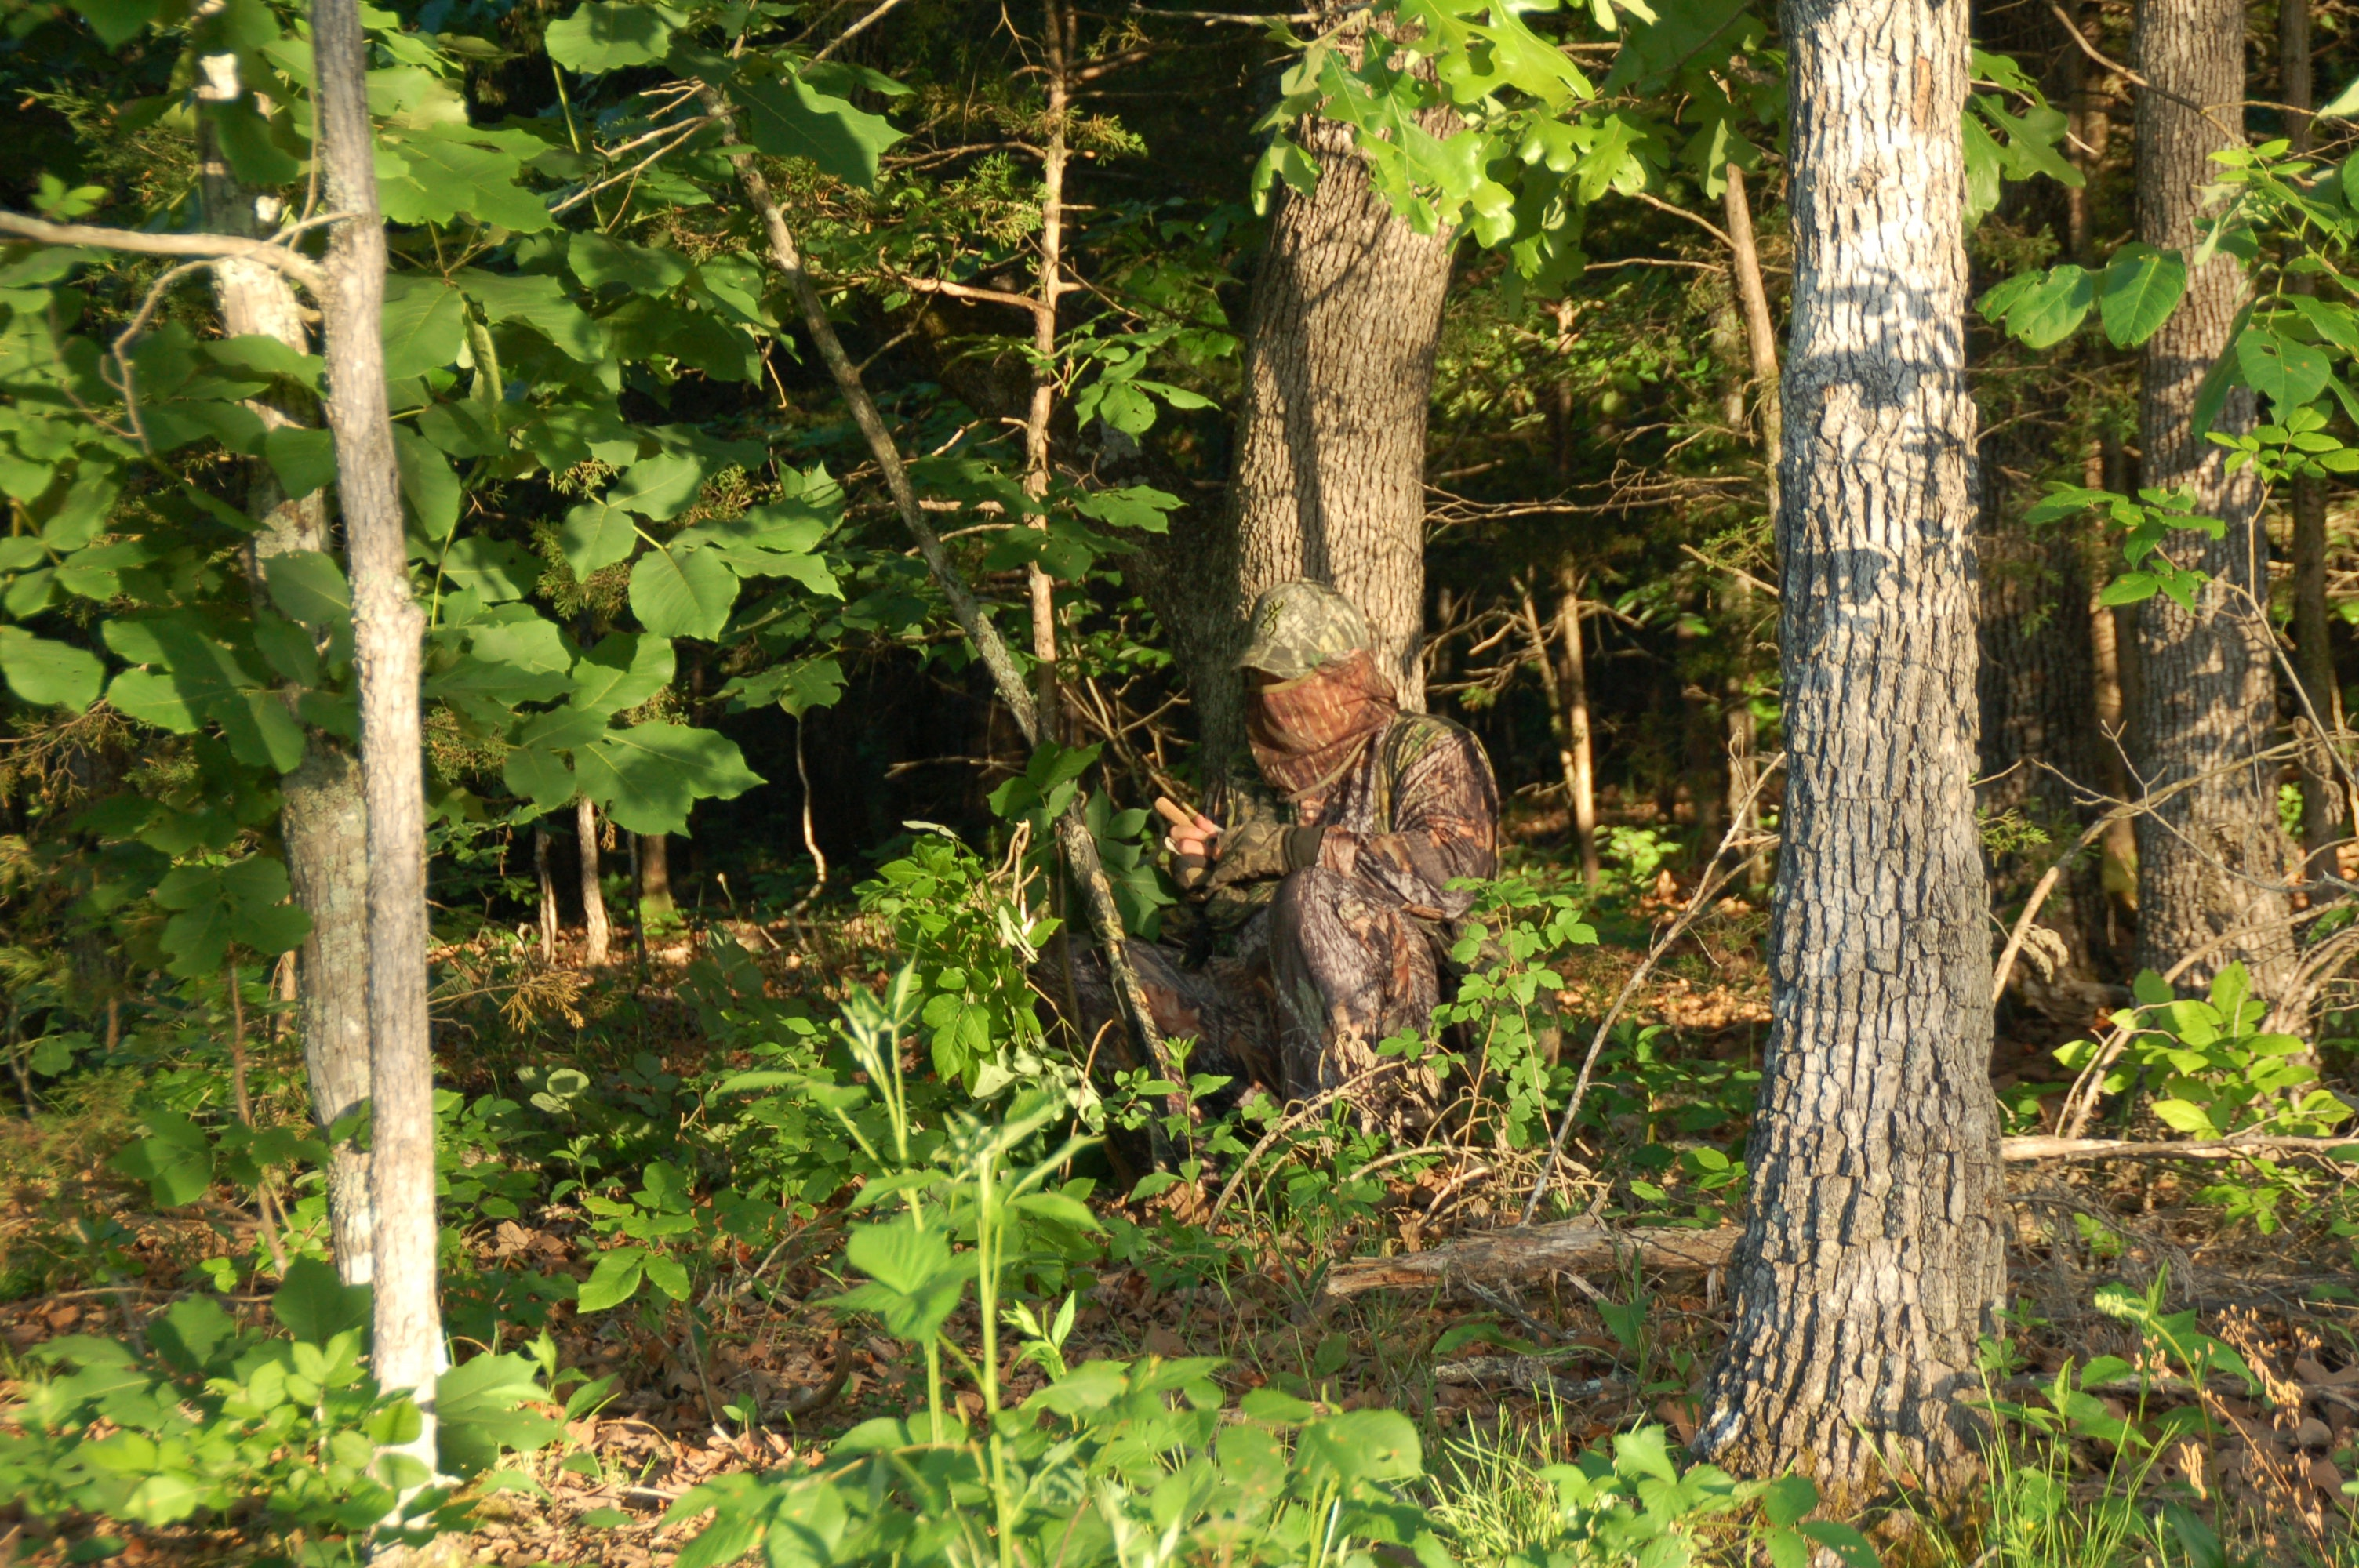 A turkey hunter hides in the underbrush working a call to lure in a gobbler.